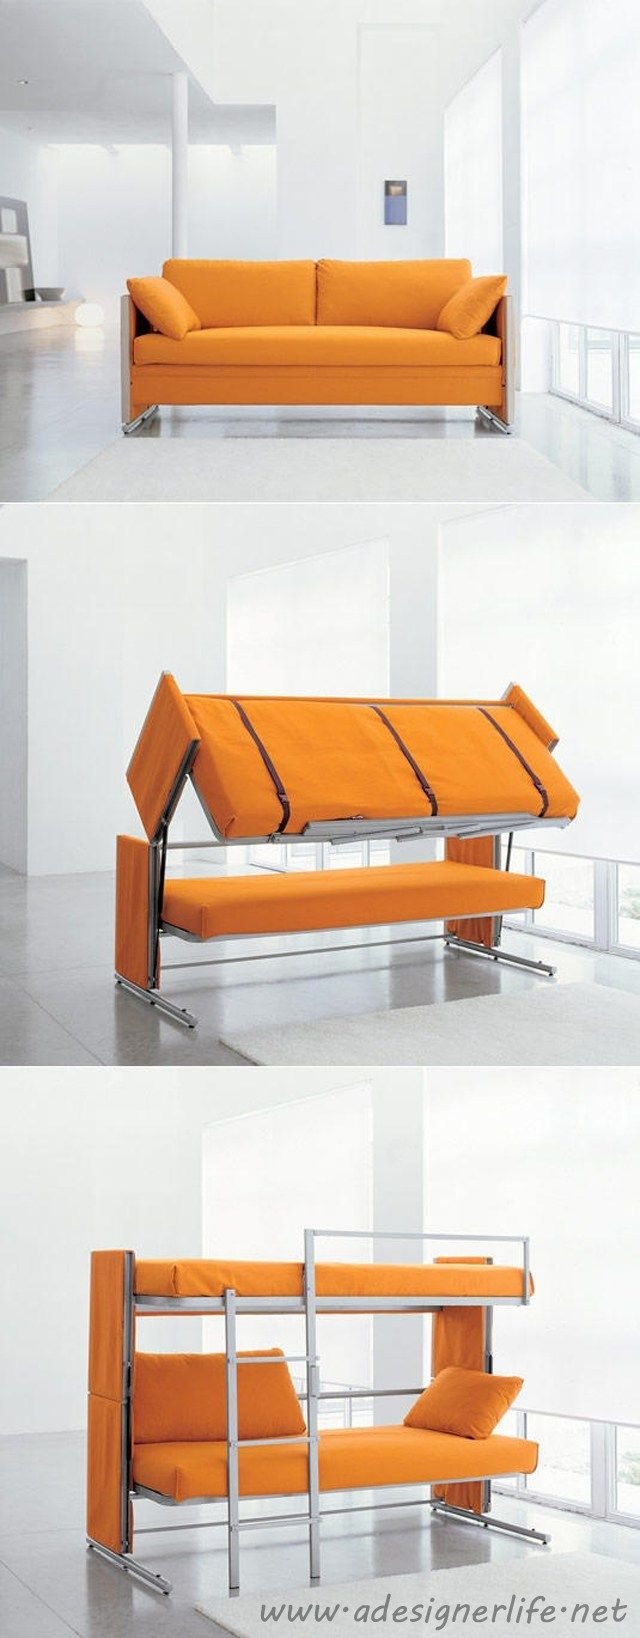 Awesome Products : The Most Amazing Convertible Furniture. Ever.  Convertible FurnitureConvertible Bunk BedsSofa ...